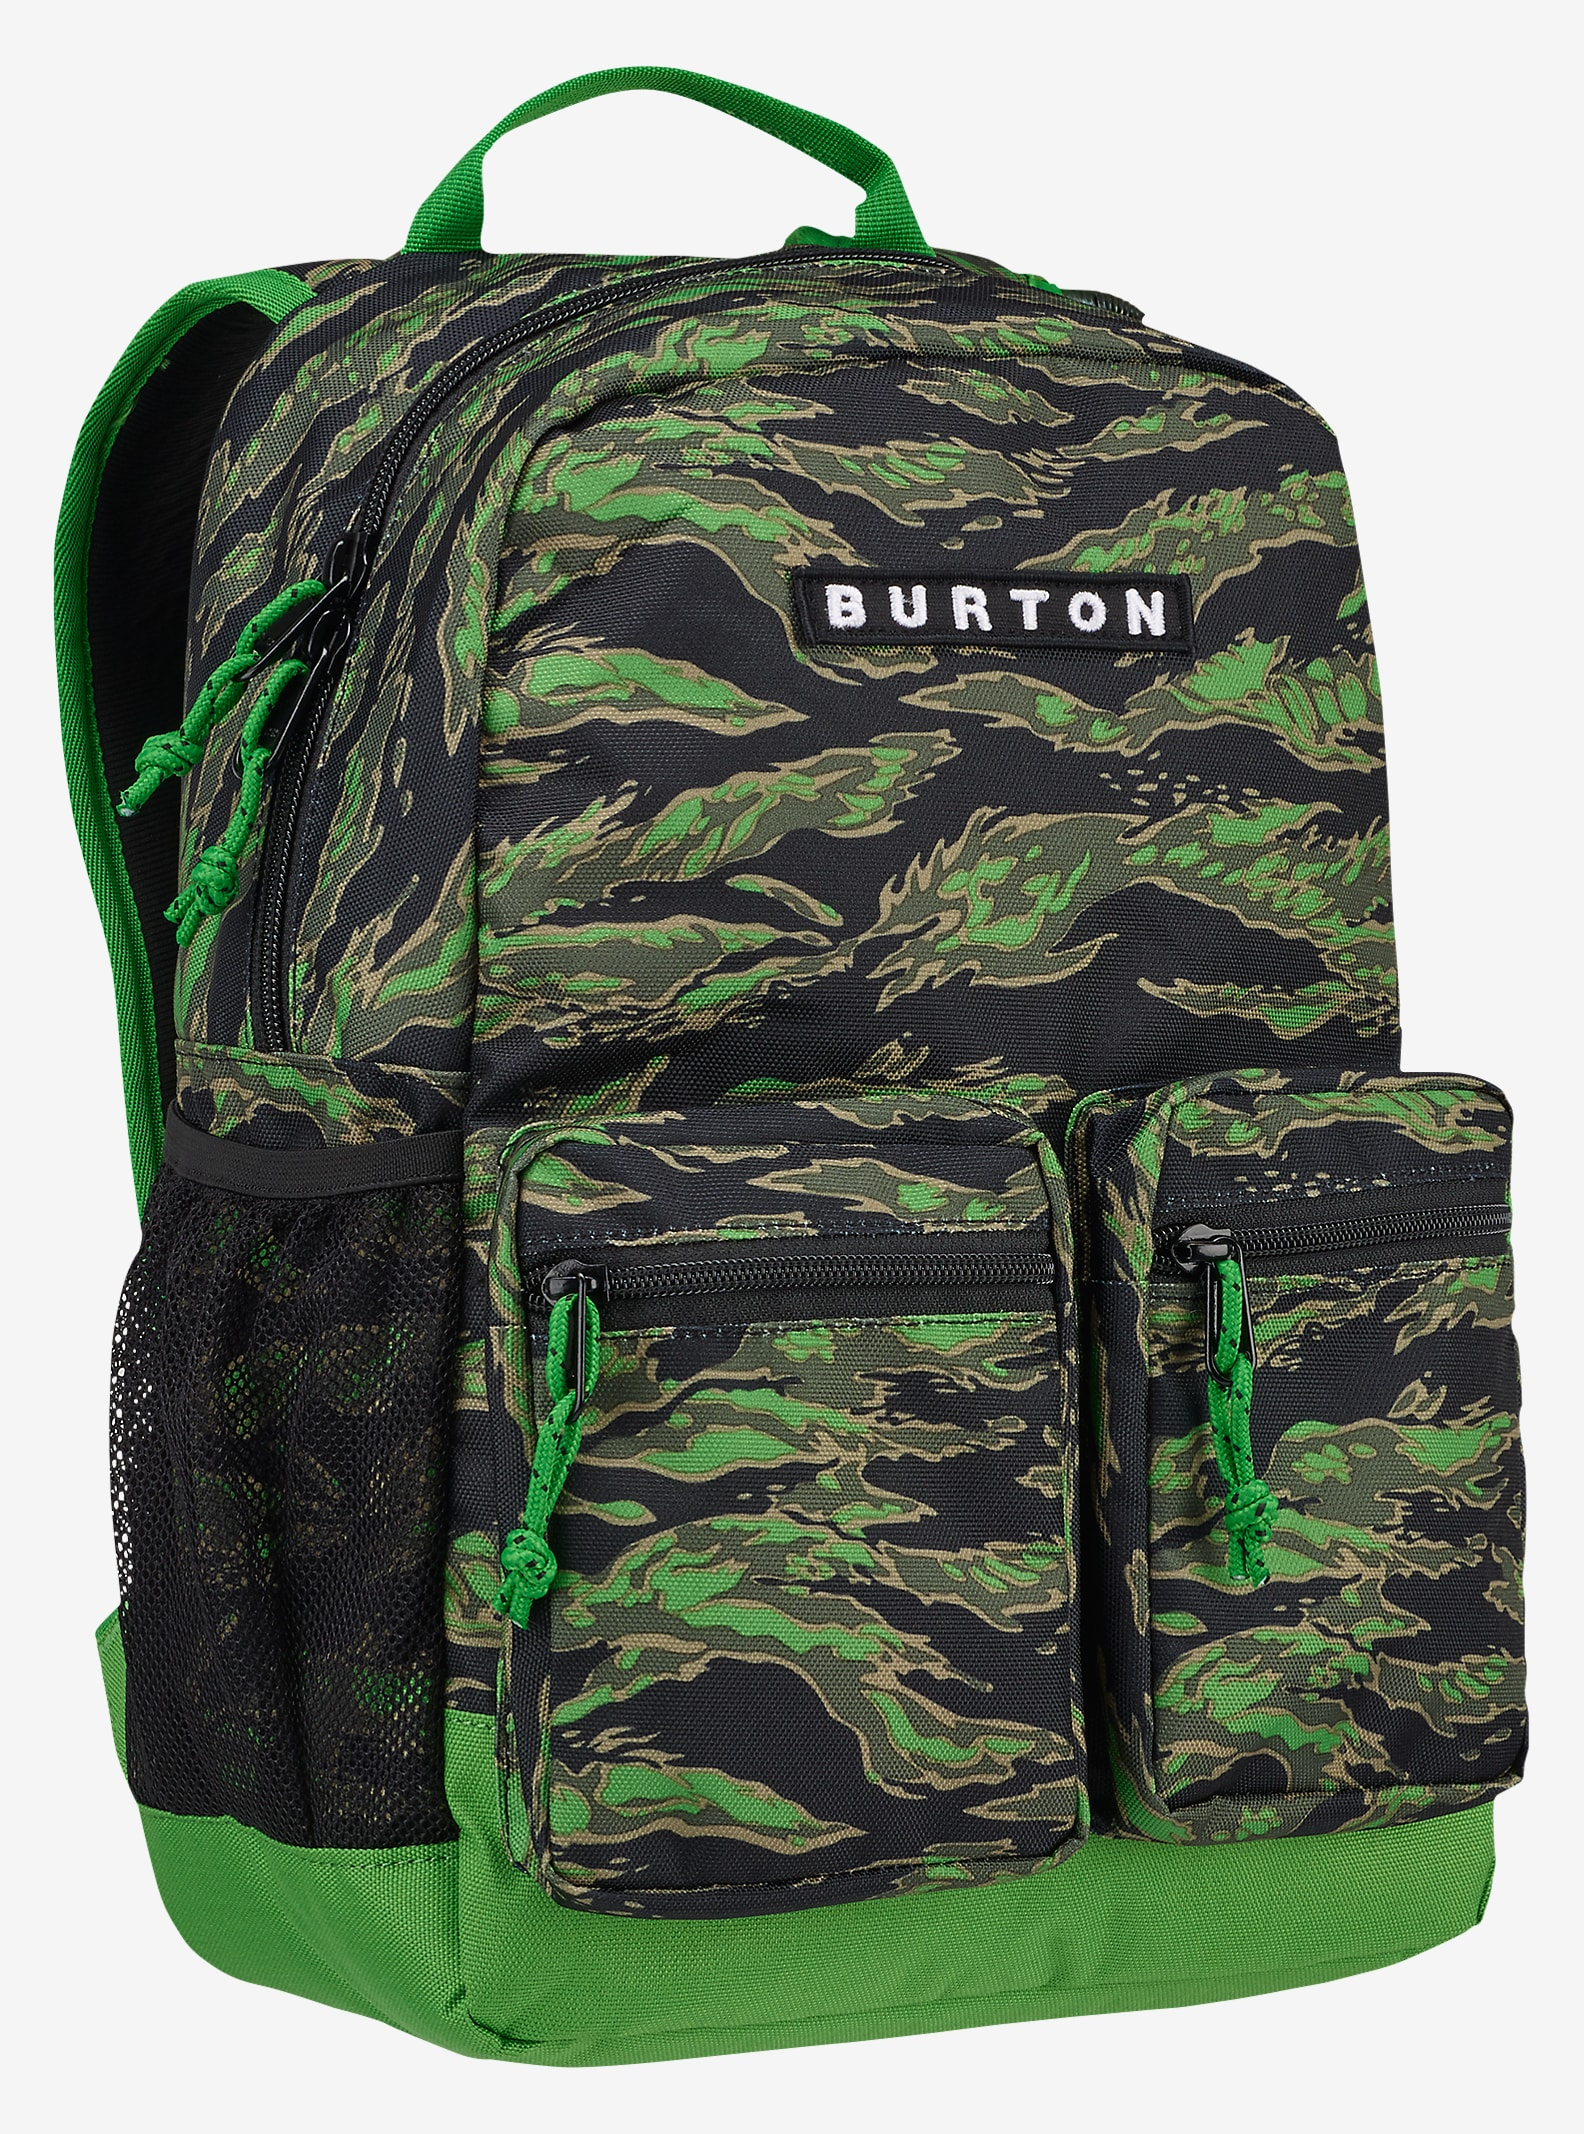 Burton Kids' Gromlet Backpack shown in Slime Camo Print